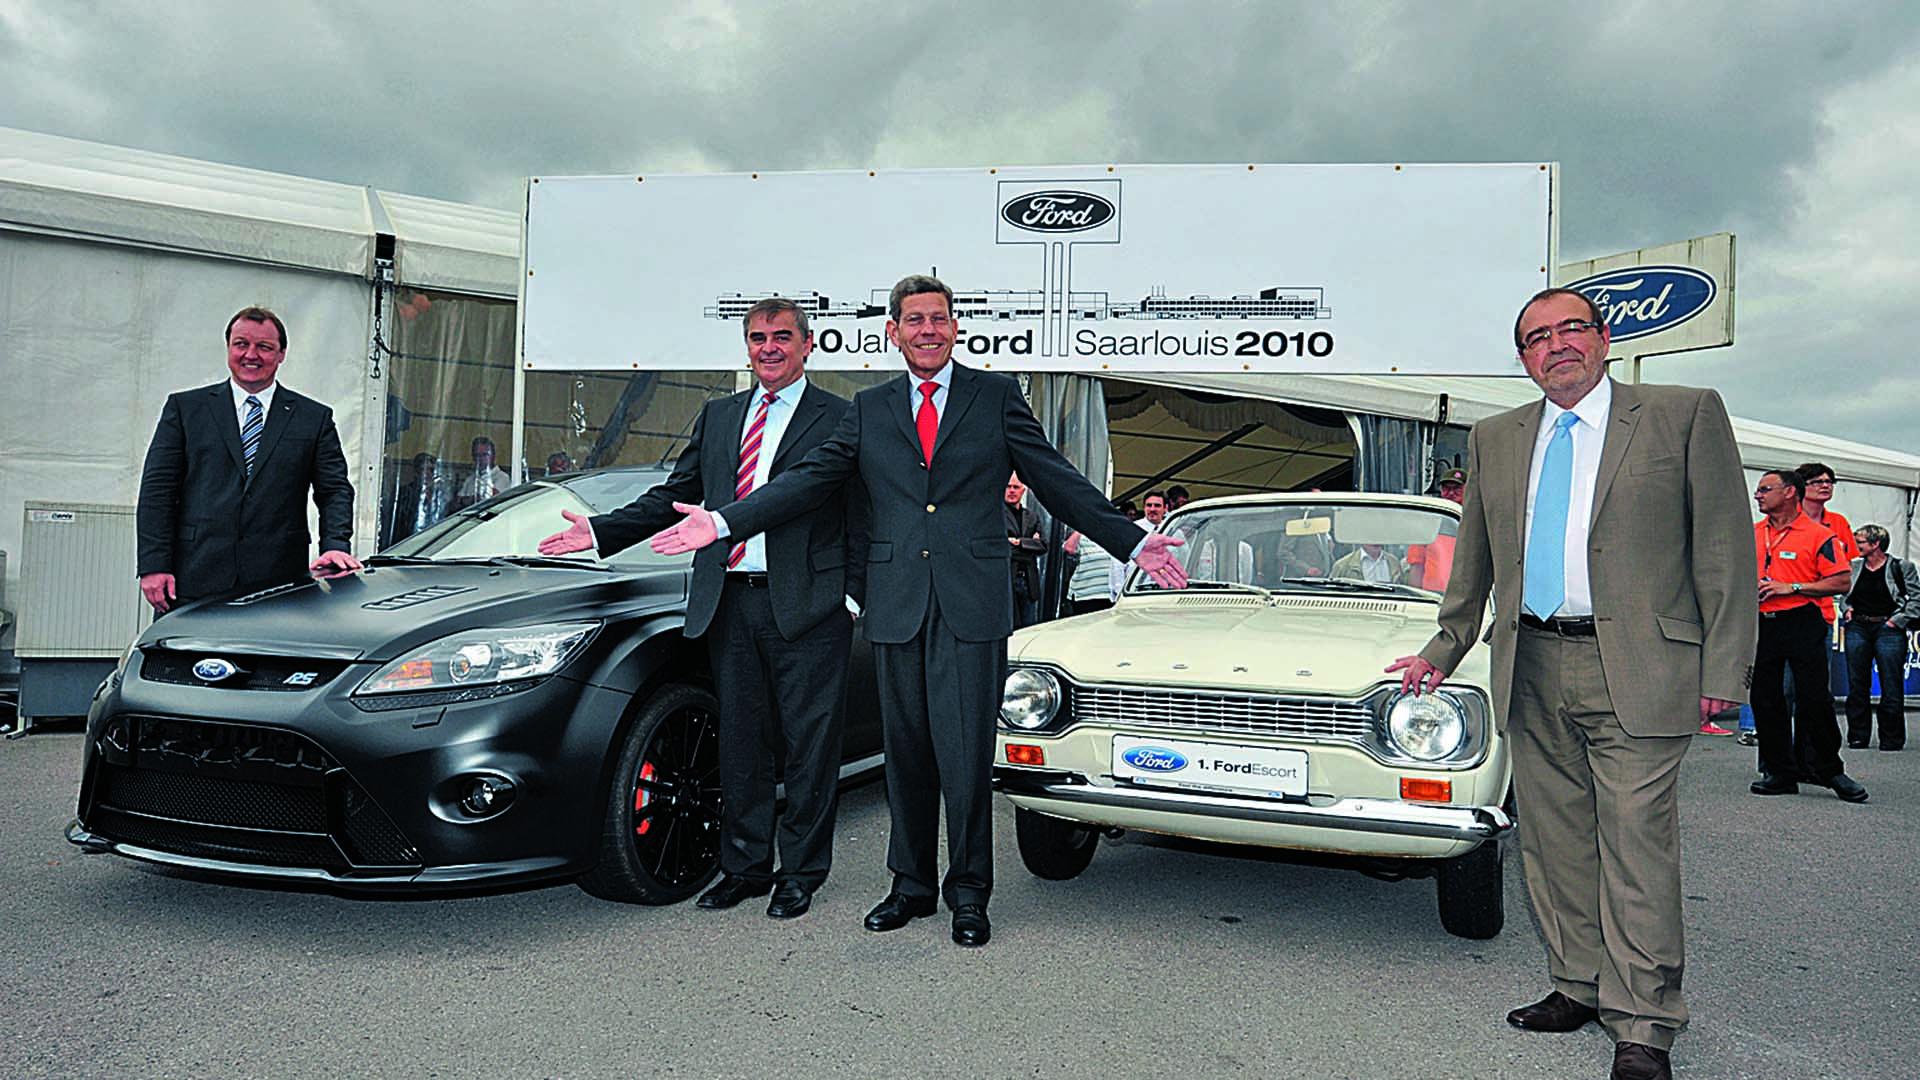 50 years of classic Fords